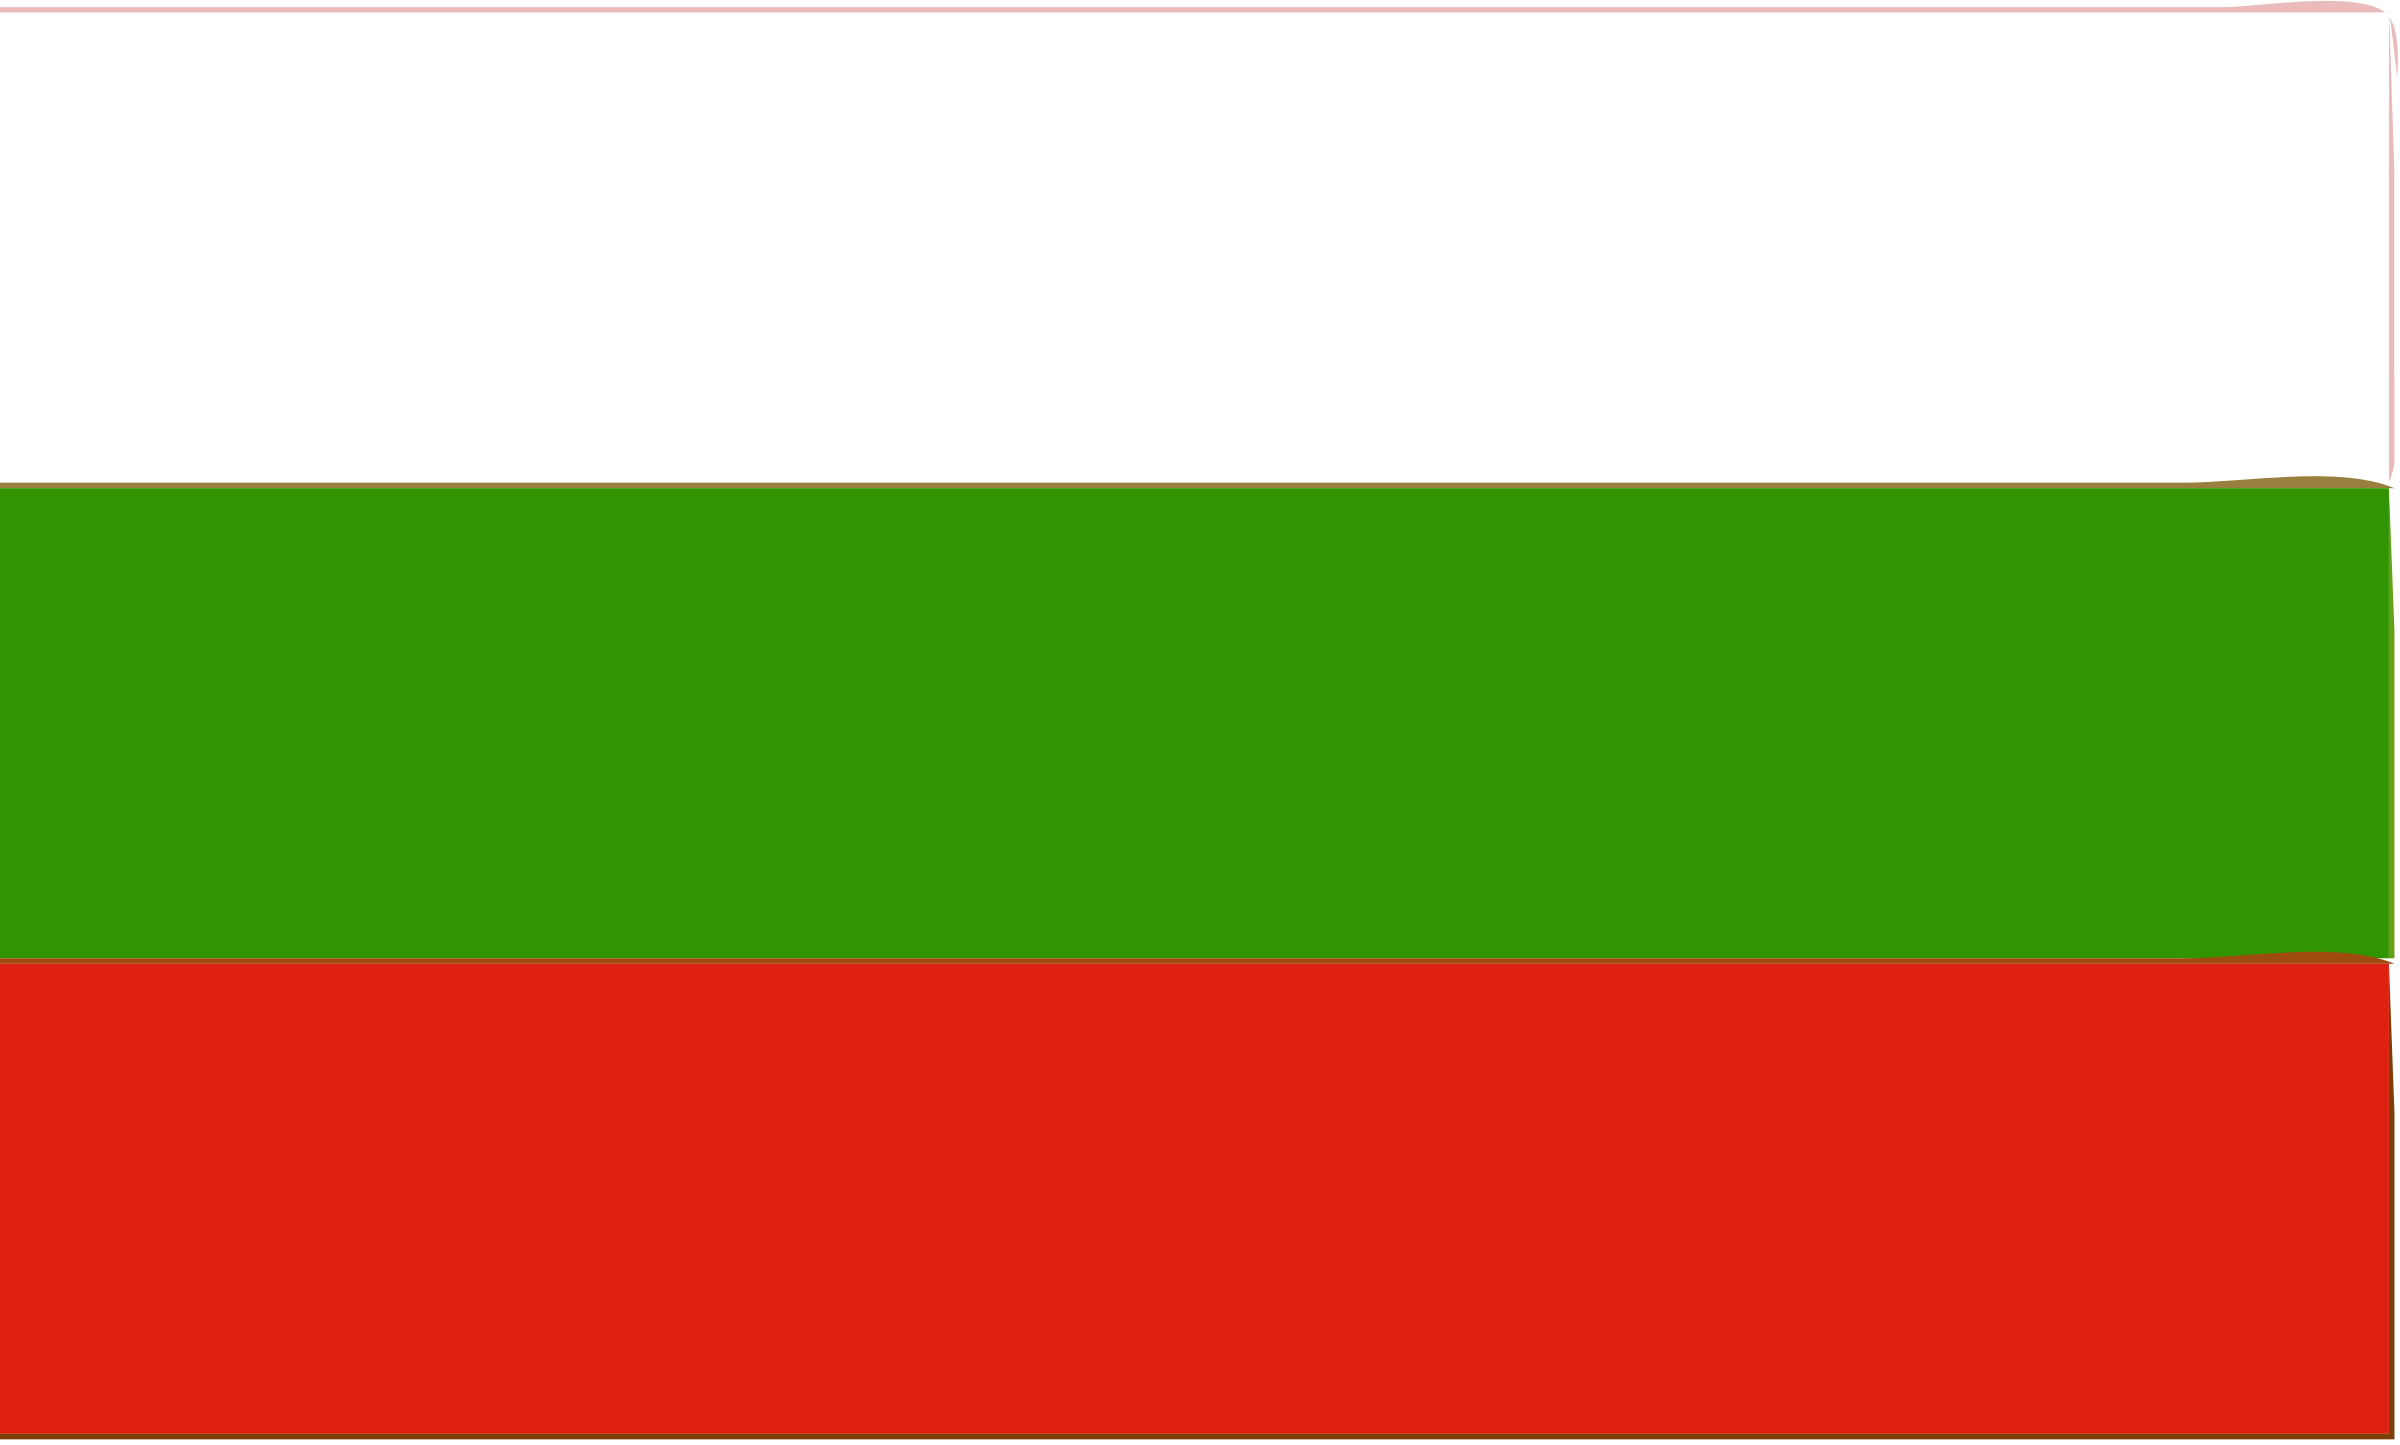 Flag of Bulgaria by Joesph